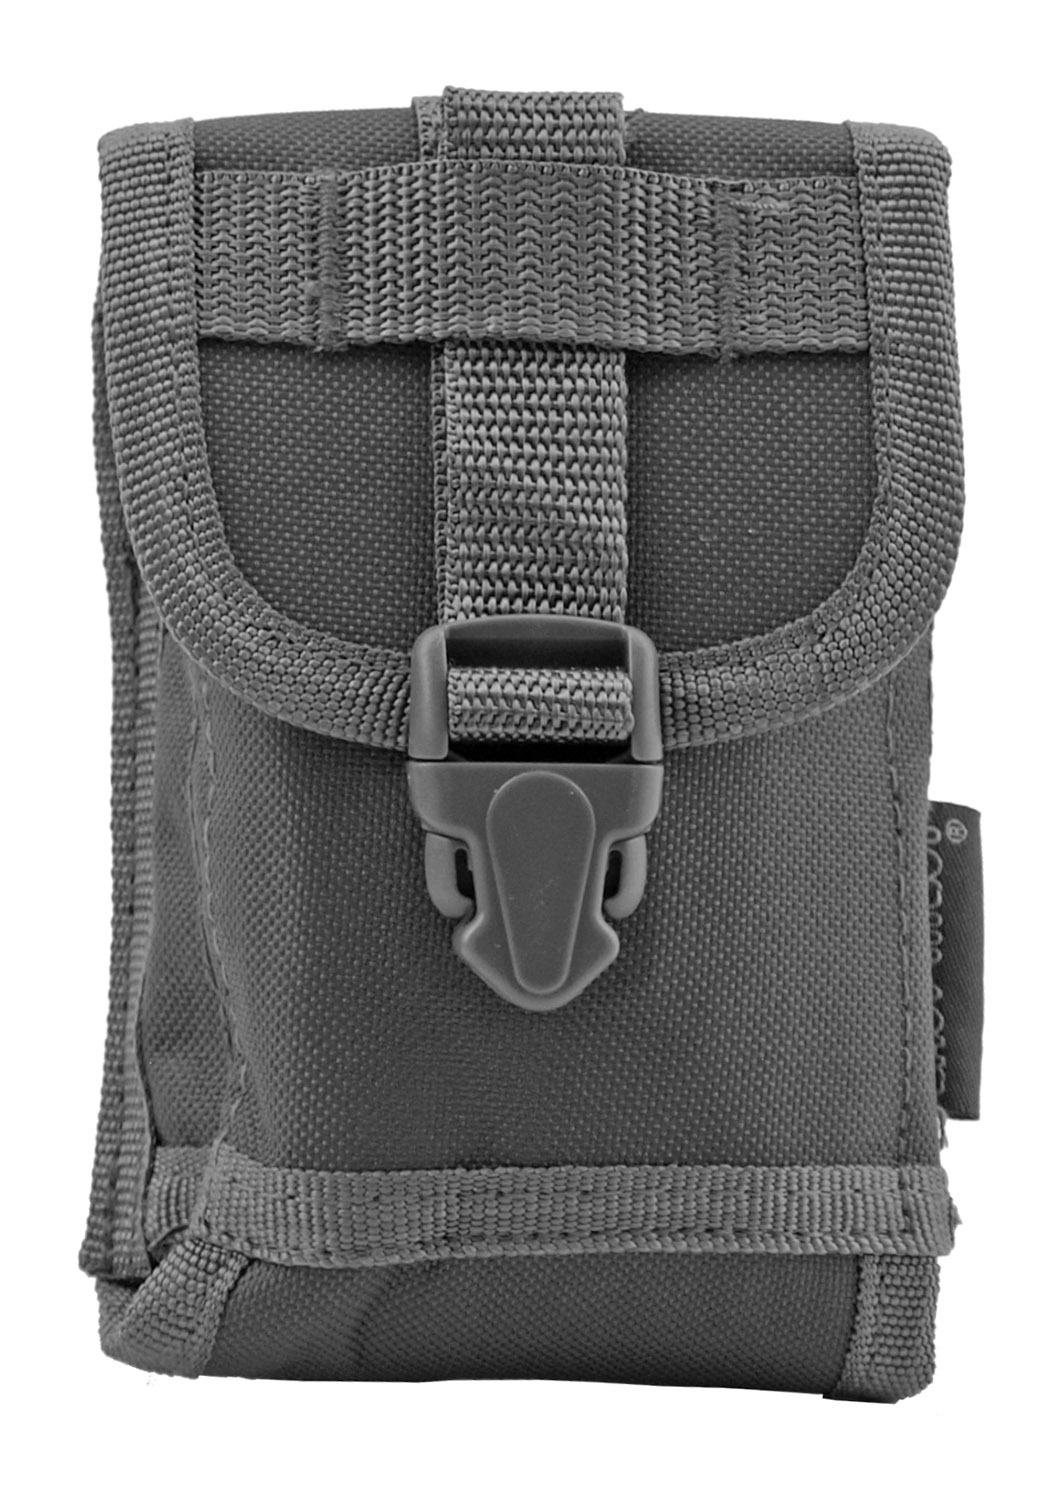 Space Force Tactical MOLLE Cell Phone Tech Pouch Carrier Vest Attachment - Grey